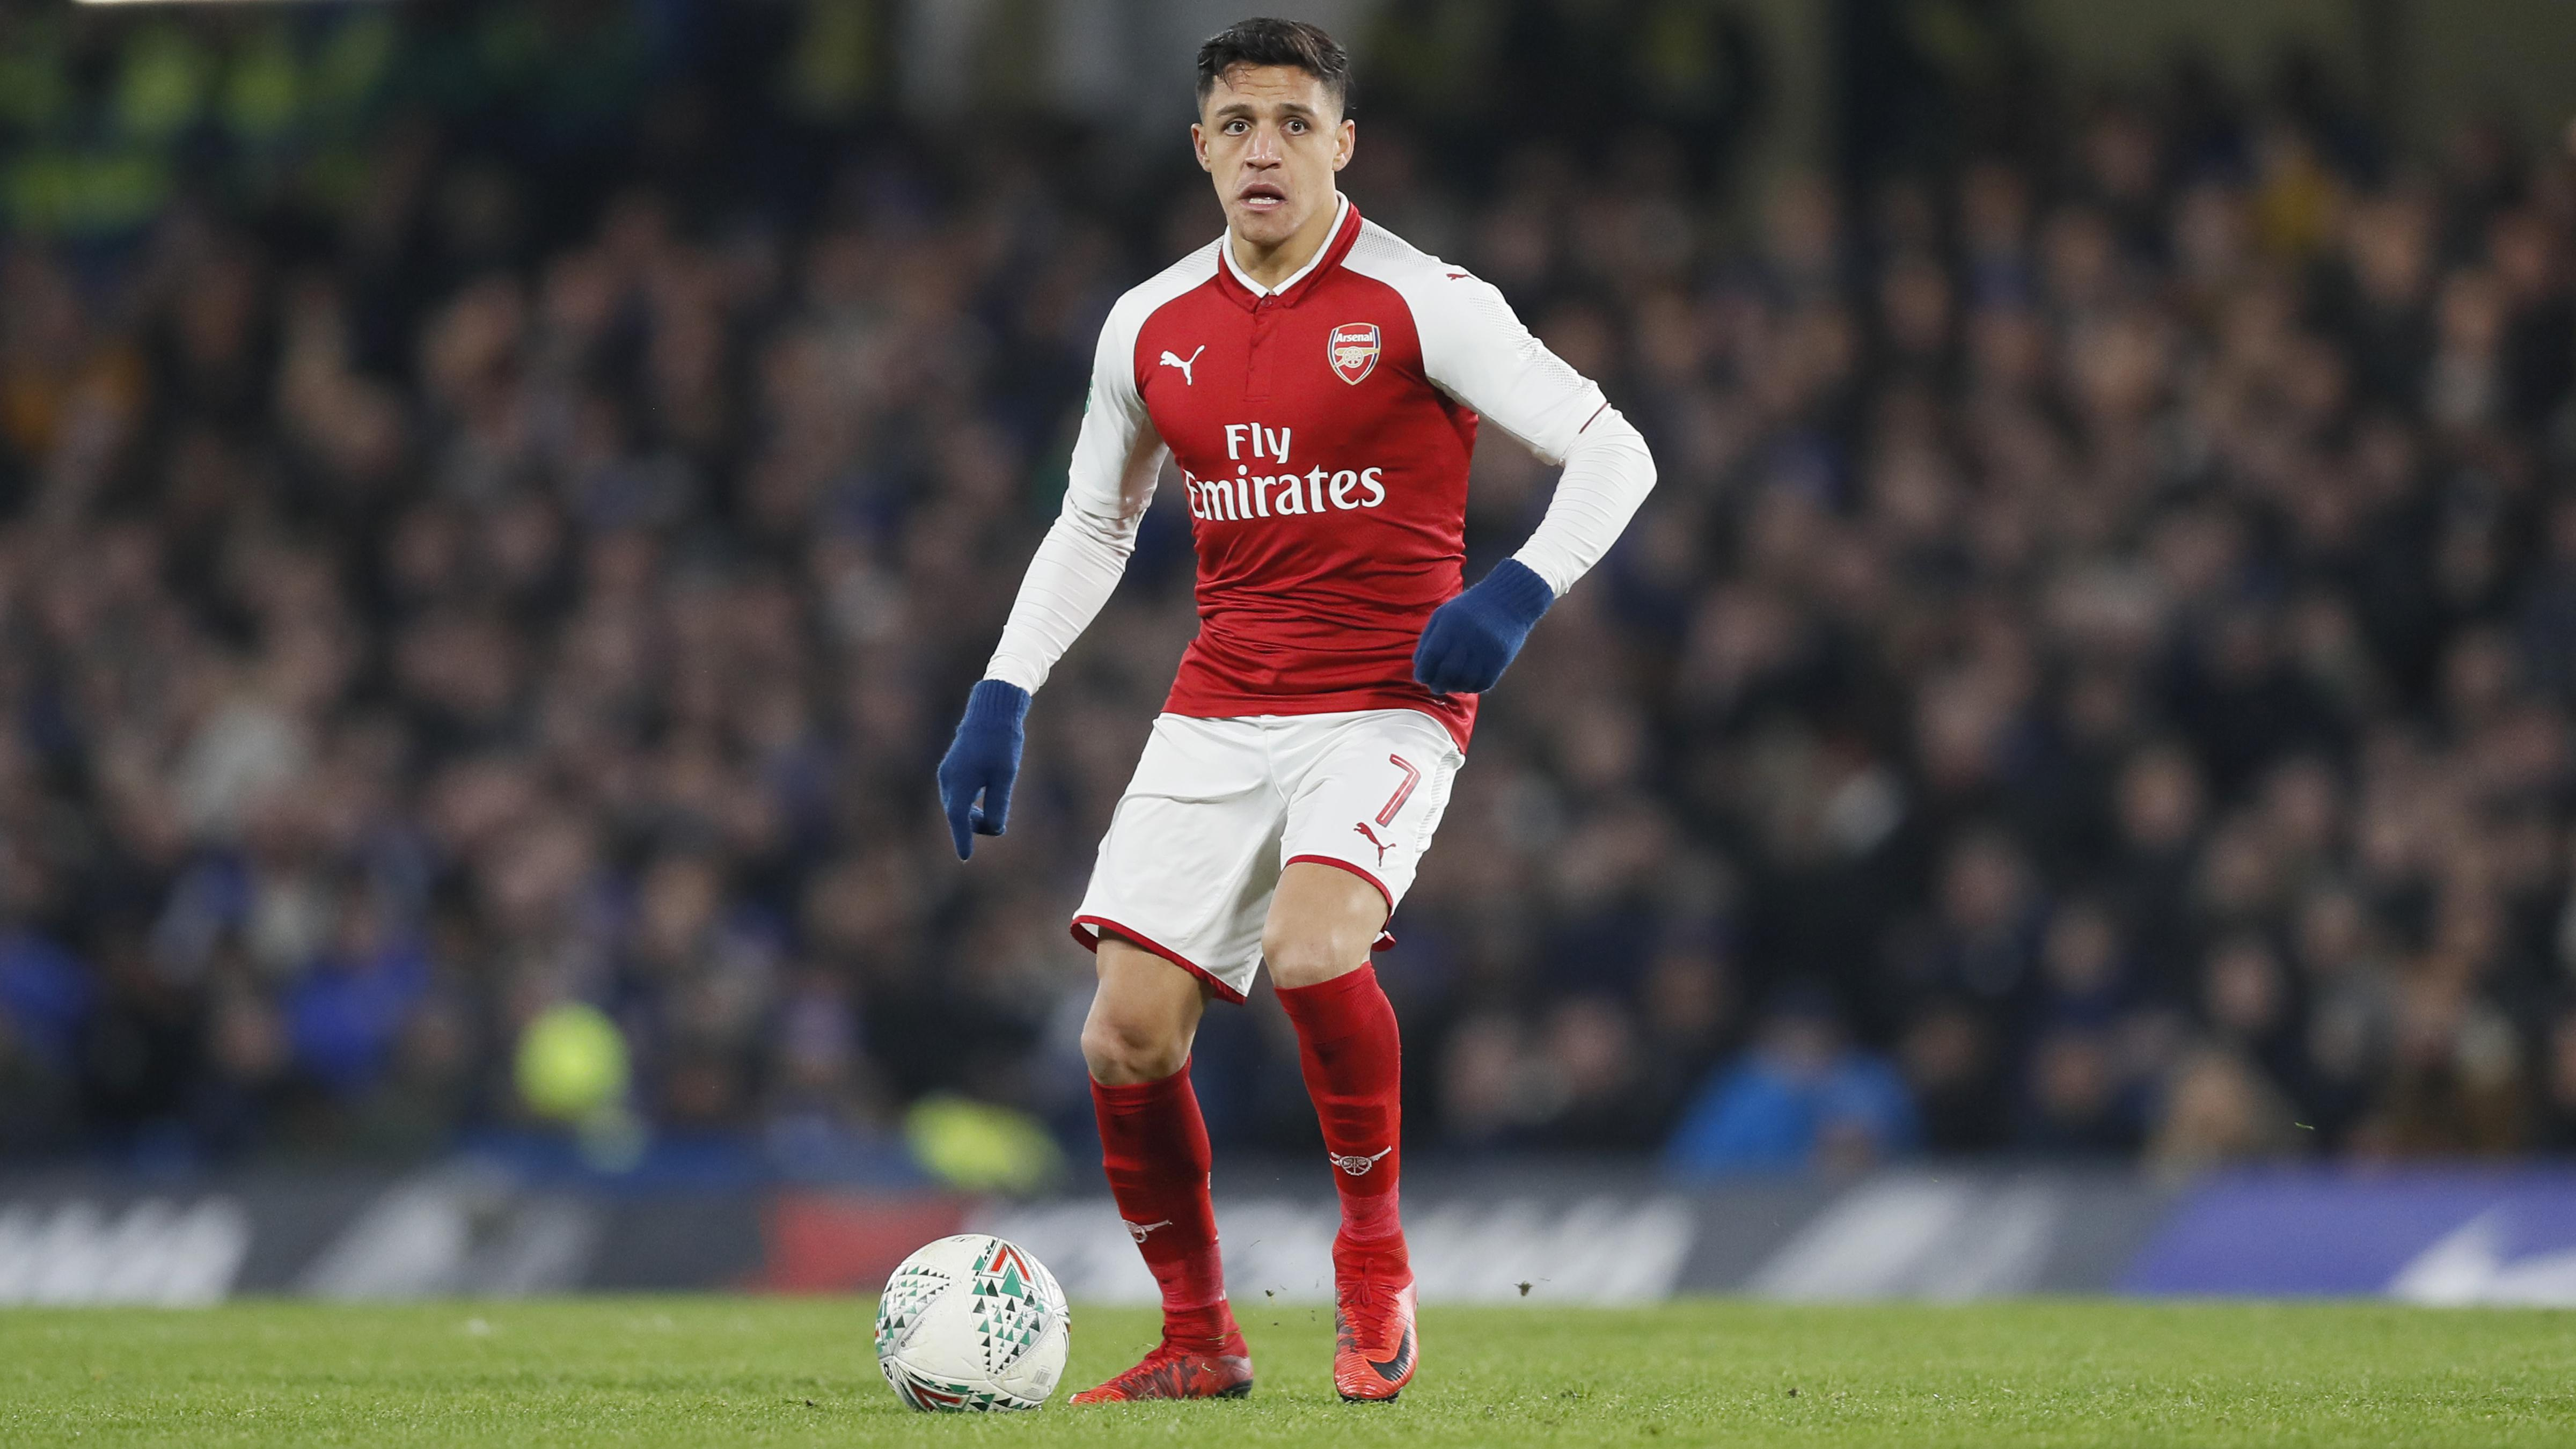 The Arsenal man looks all set to move to United